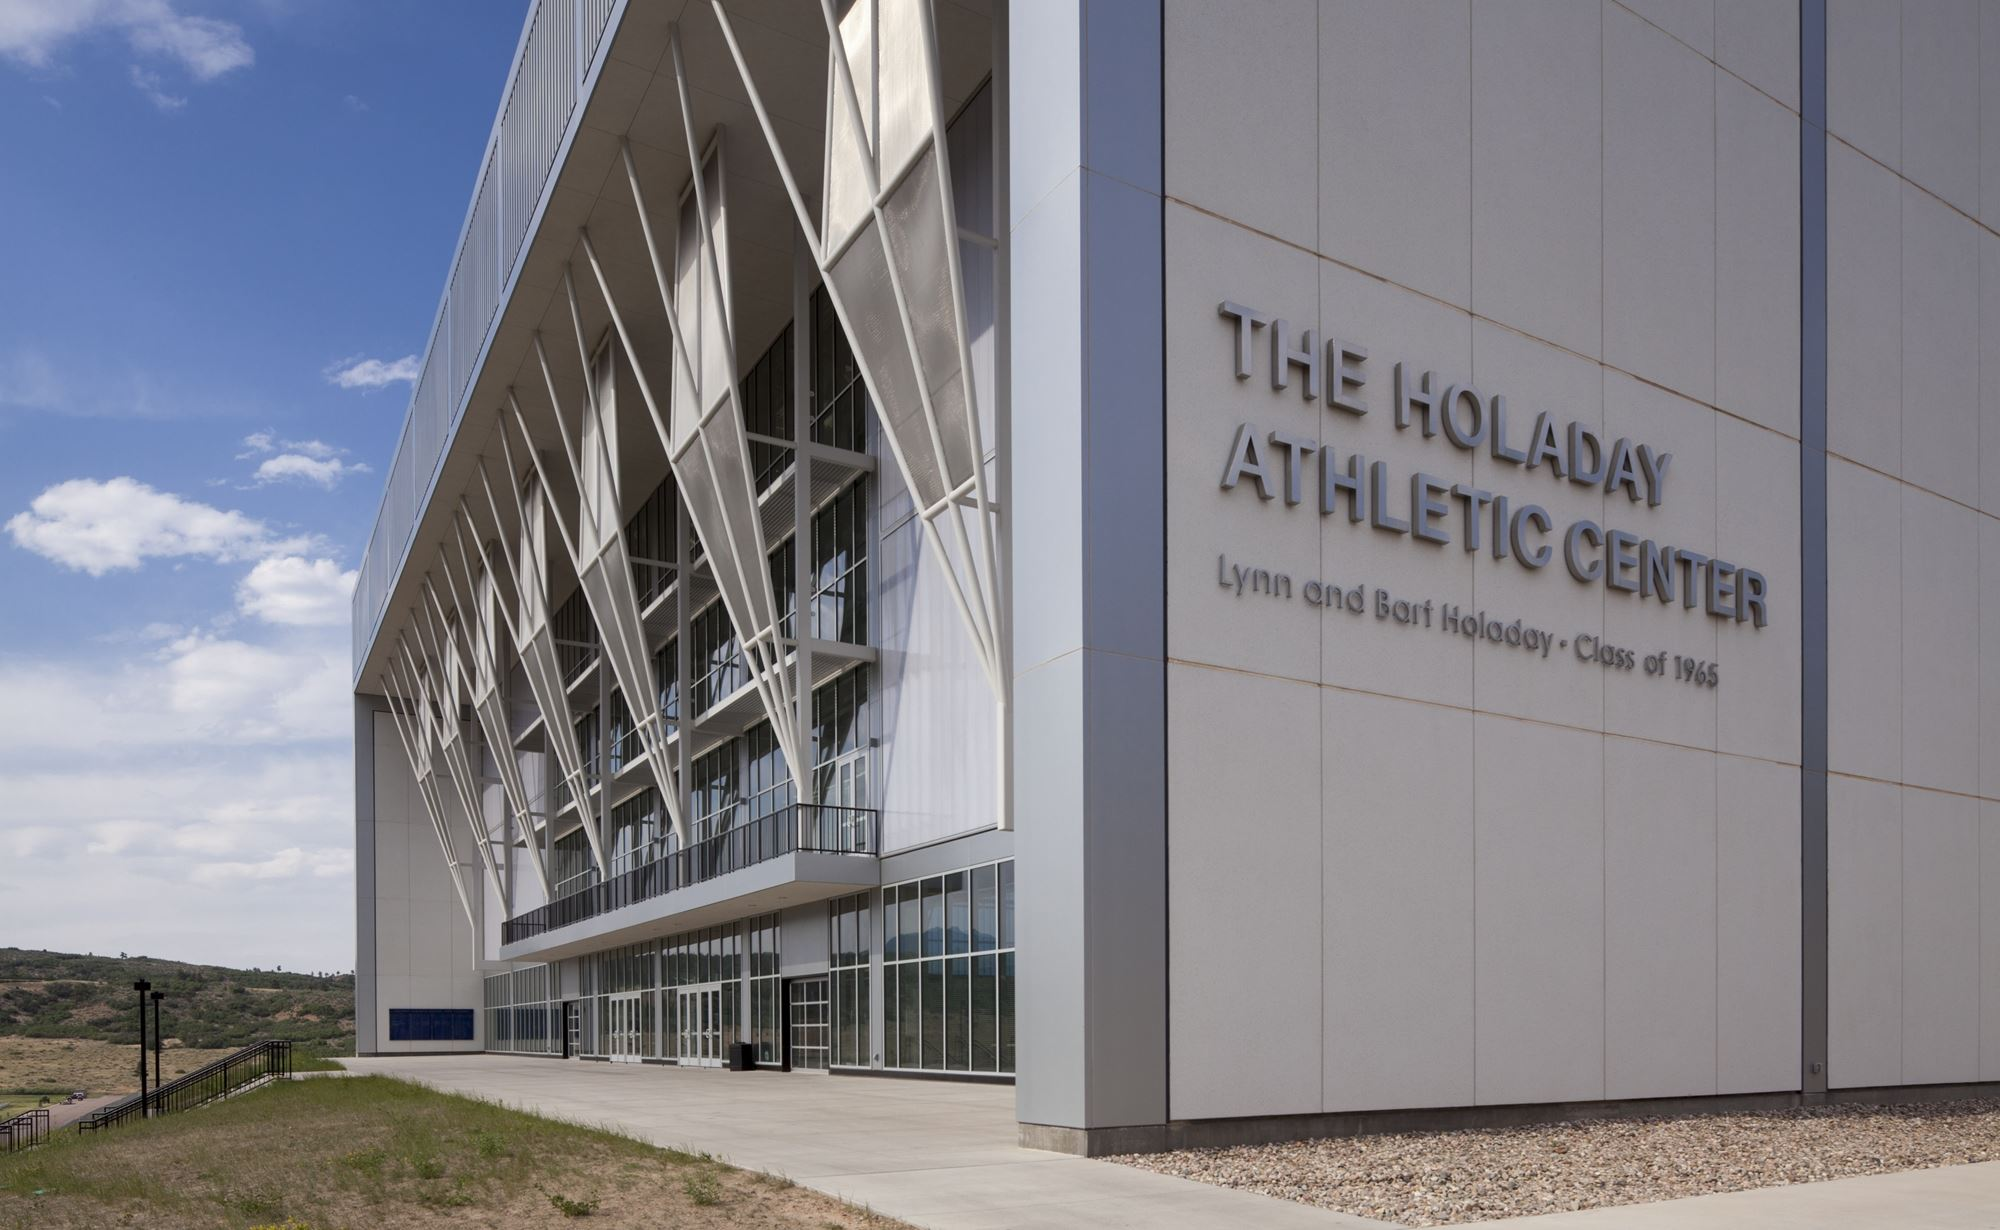 U.S. Air Force Academy Athletic Training Center